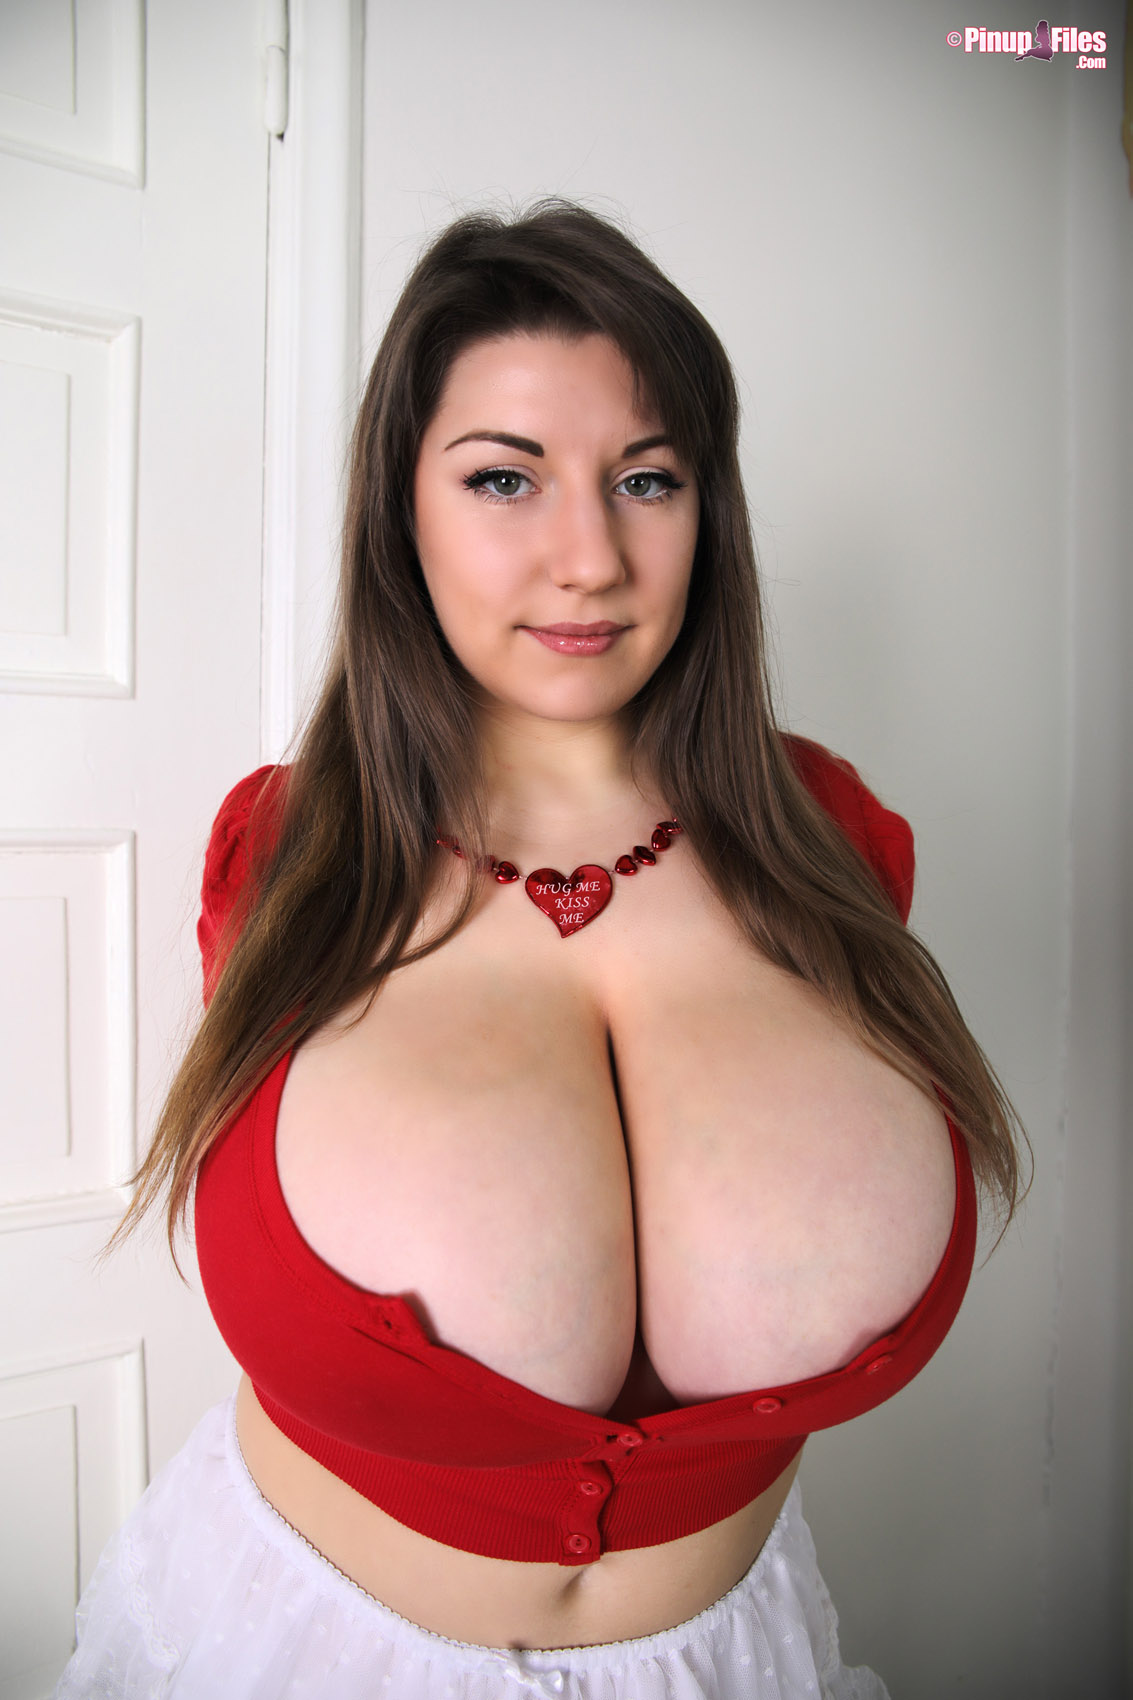 The nude videos of prime tits more